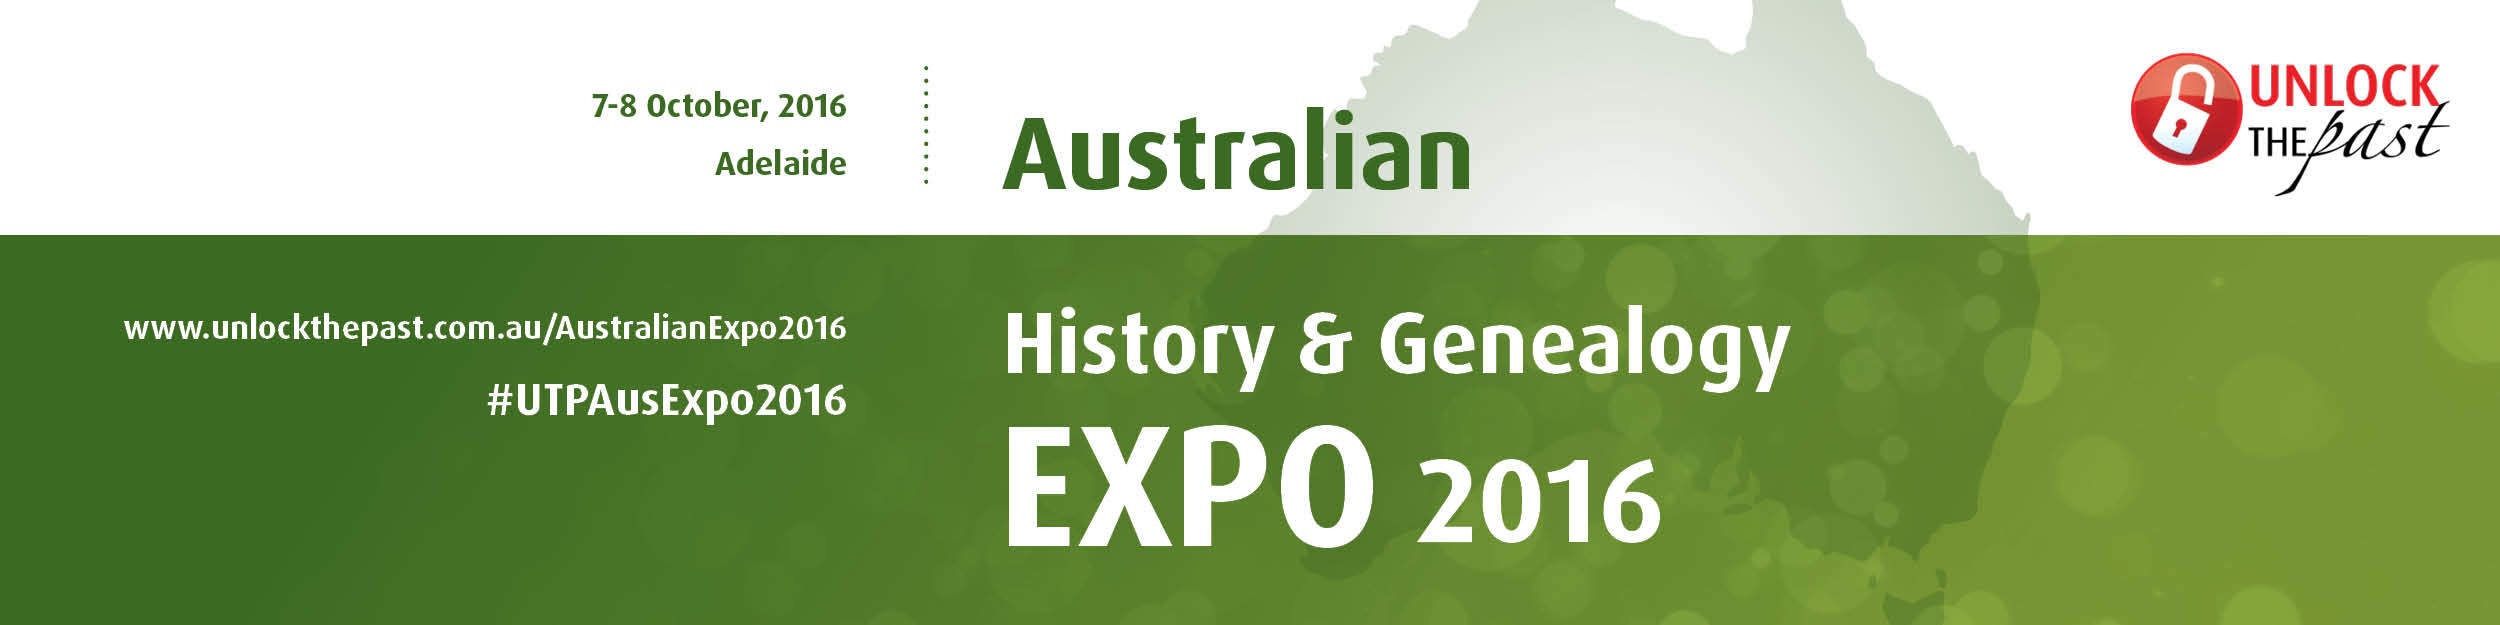 Australian History & Genealogy Expo 2016 – Exhibitor Registrations Now Open